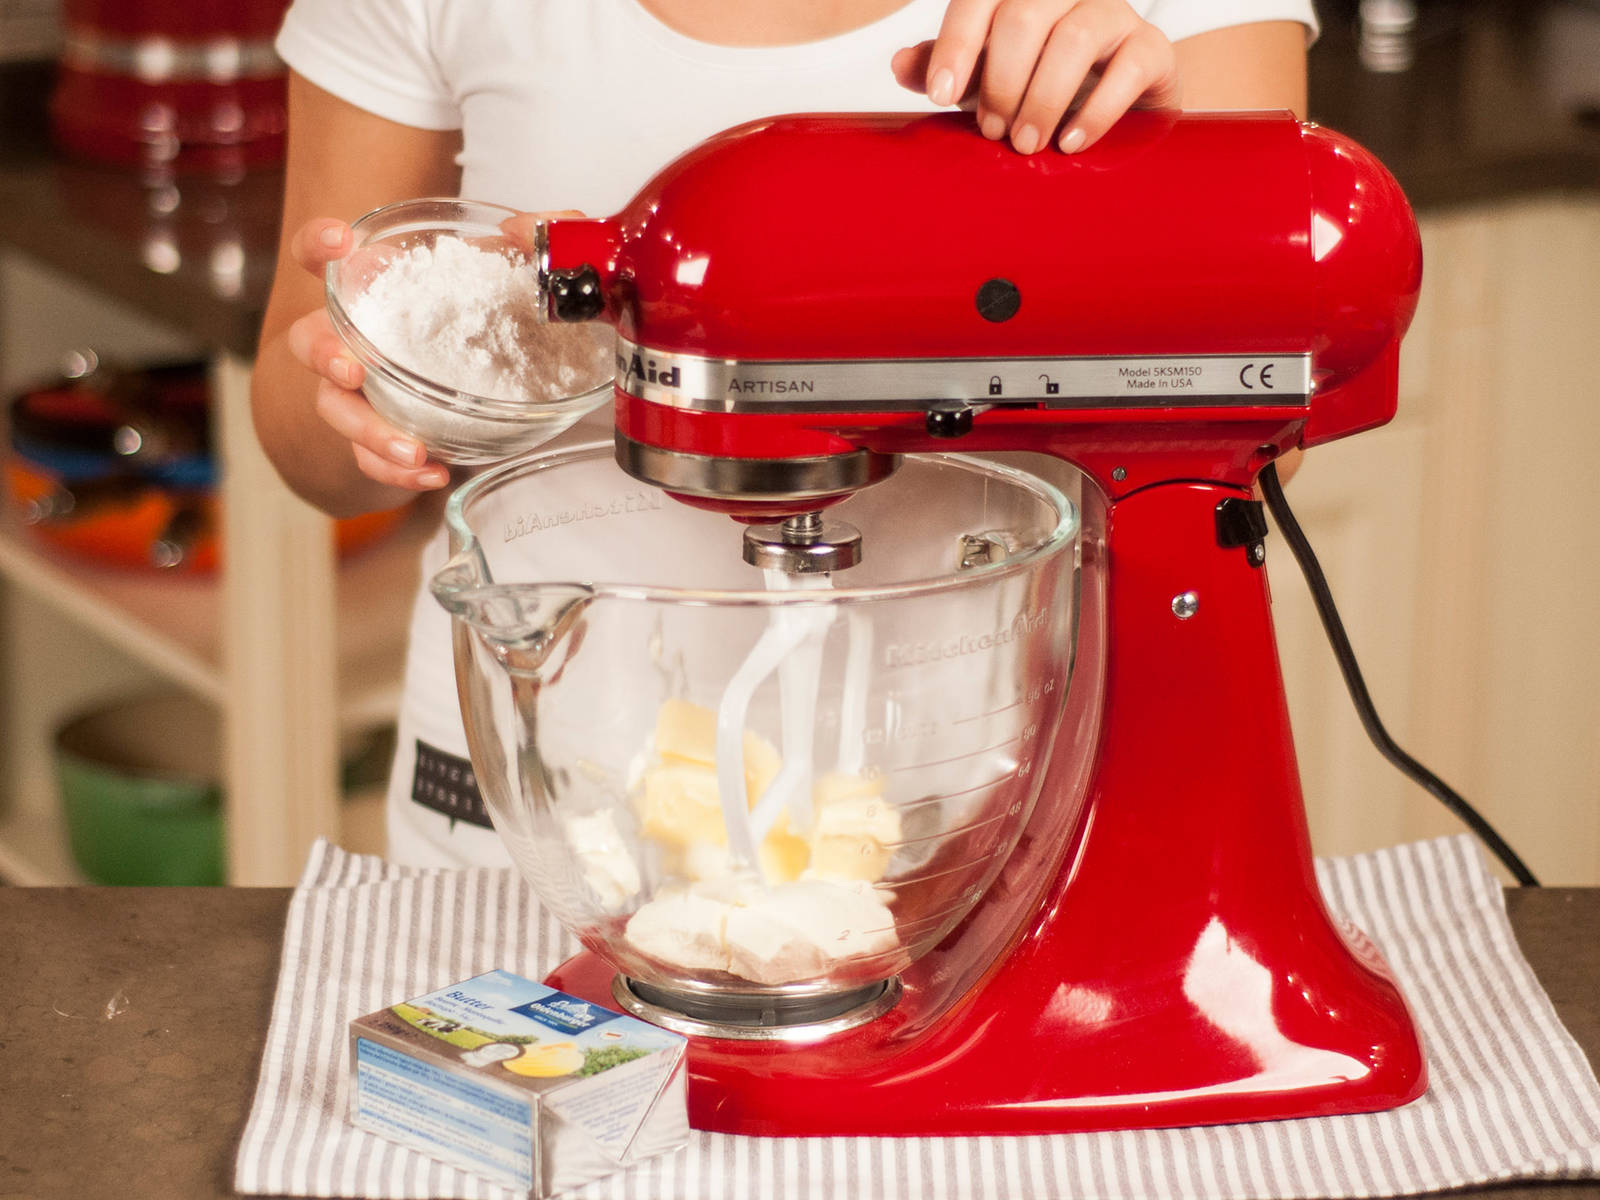 For the icing, beat cream cheese, soft butter, and confectioner's sugar until smooth.